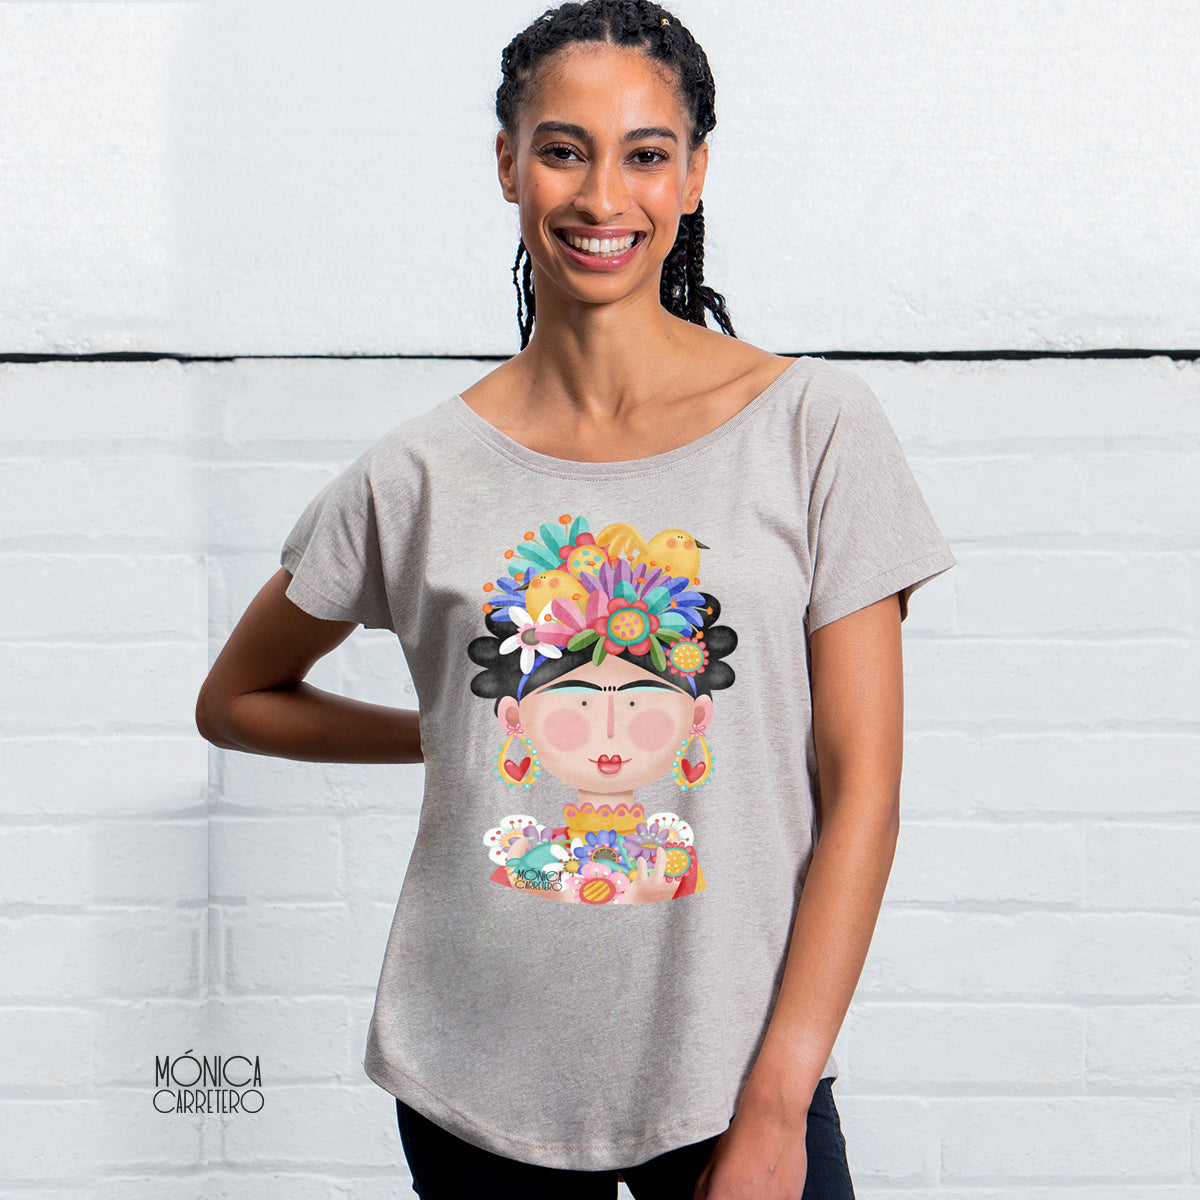 Camiseta Frida color arena.